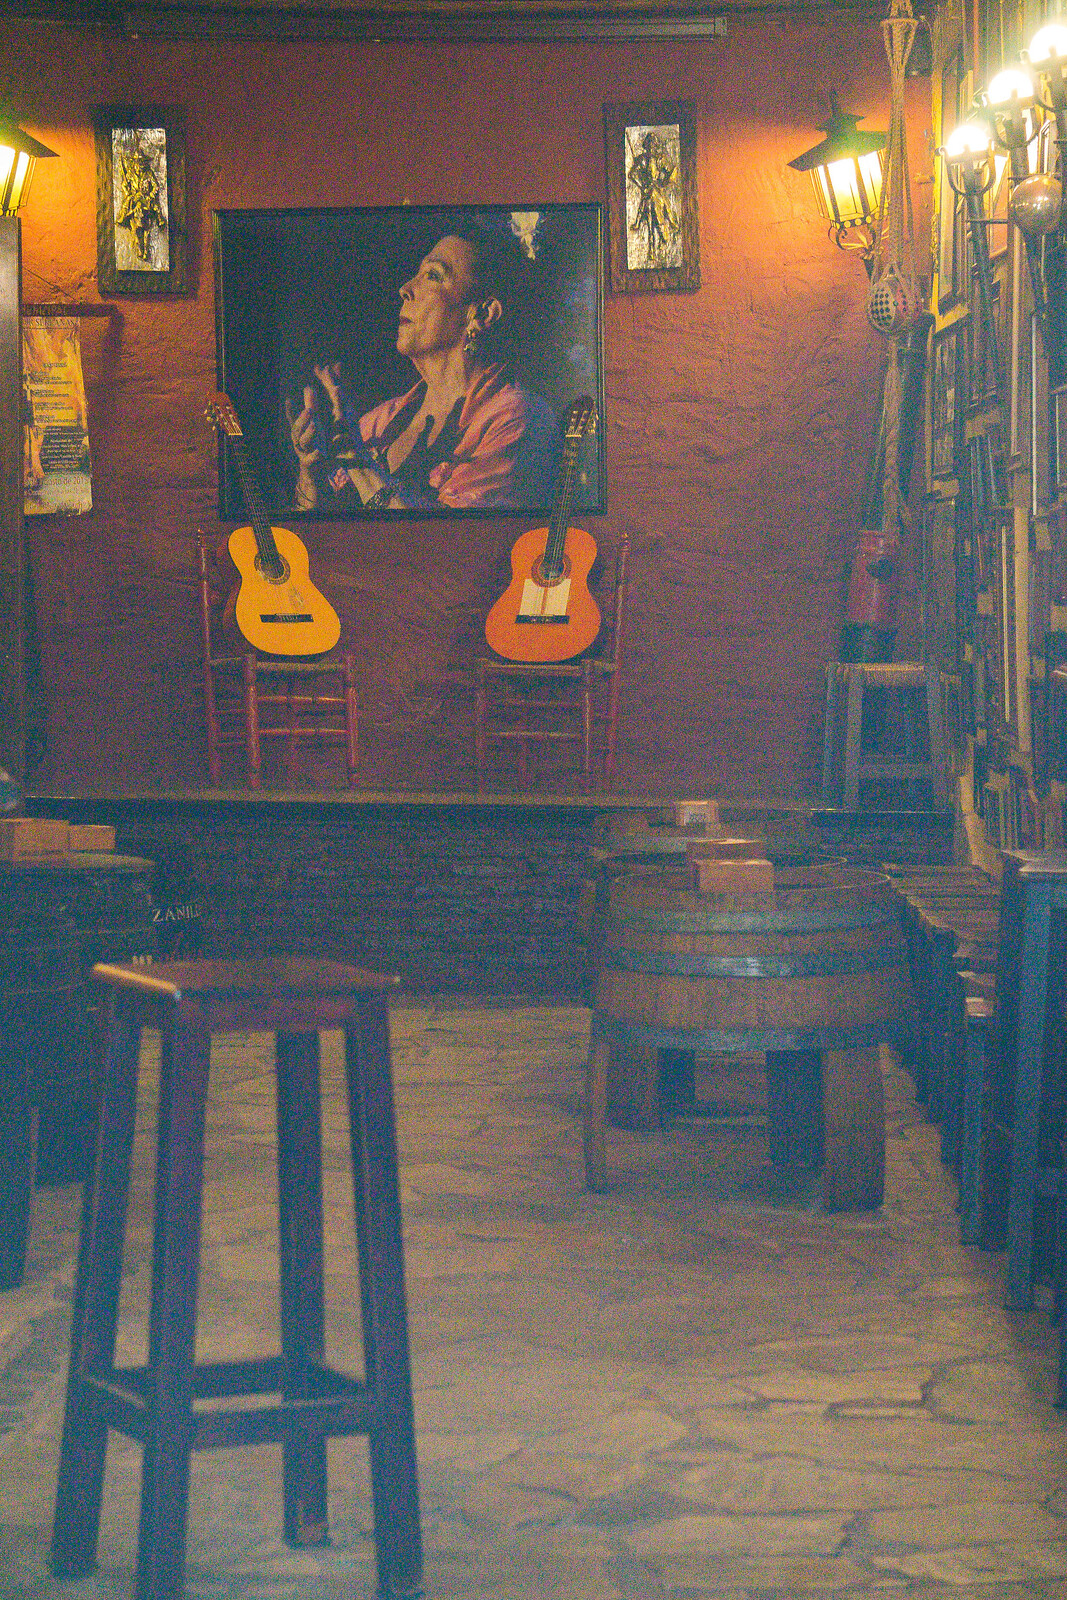 The interior of the flamenco bar, with two guitars arranged on chairs, underneath the painting of an old flamenco dancer who is clapping her hands. The interior is quite atmospheric because there isn't much light.